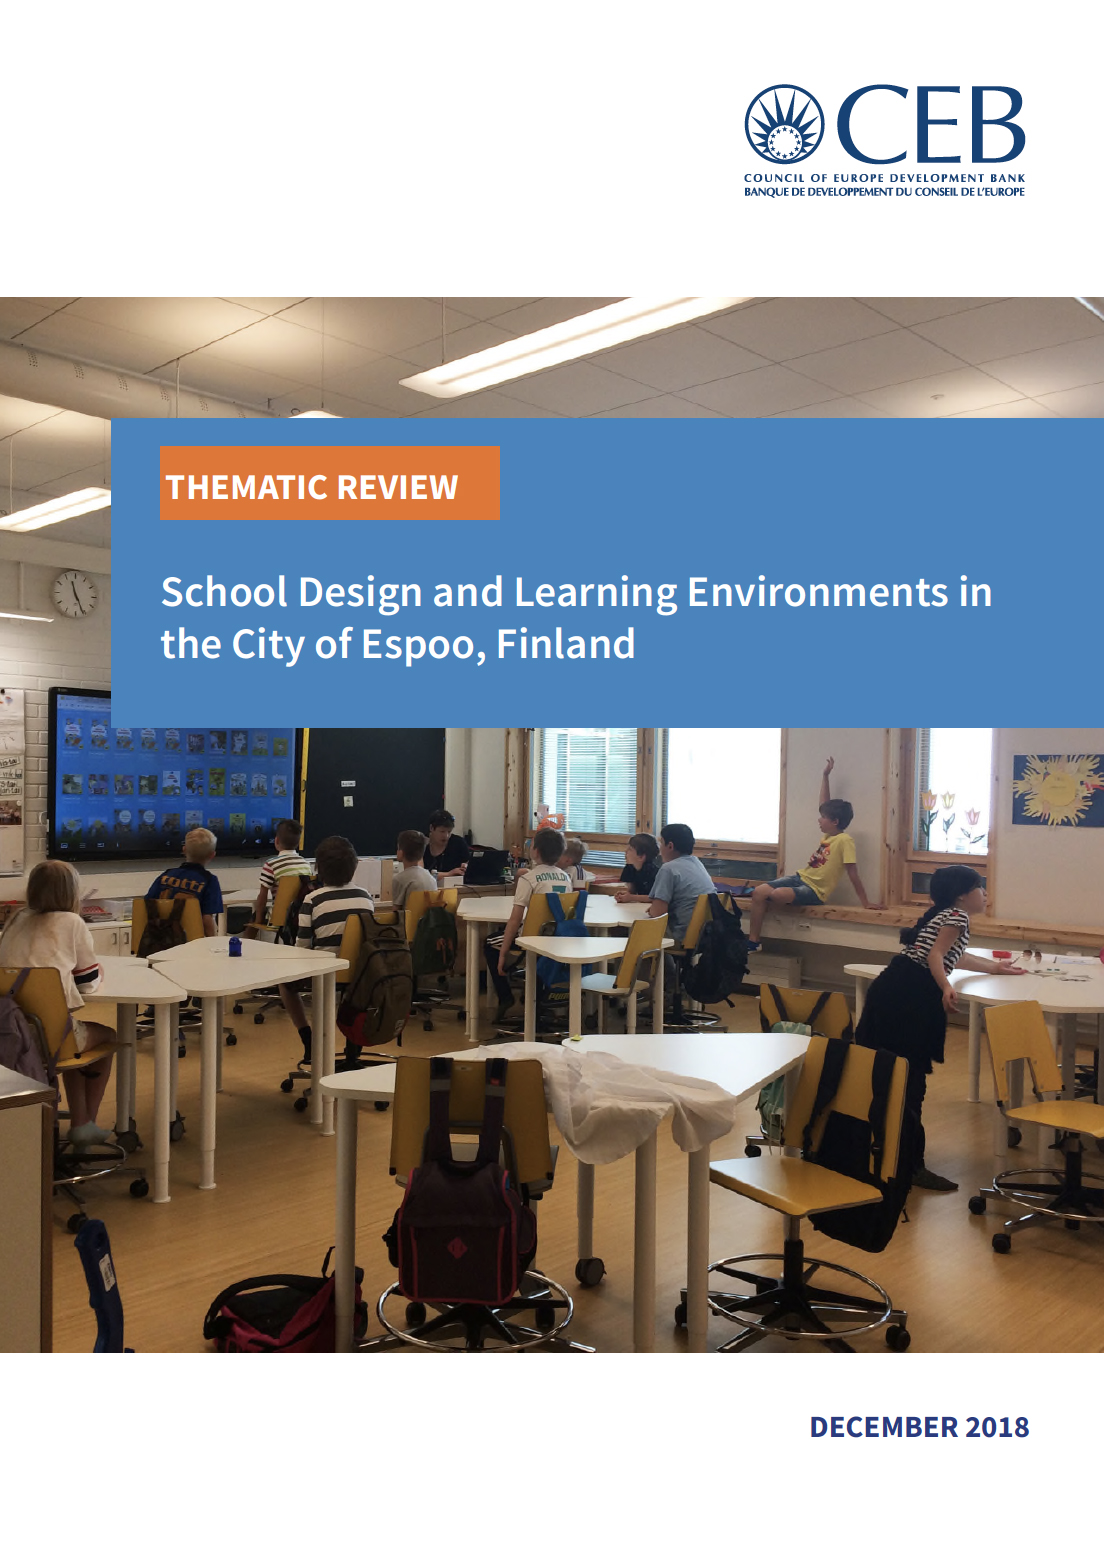 School Design and Learning Environments